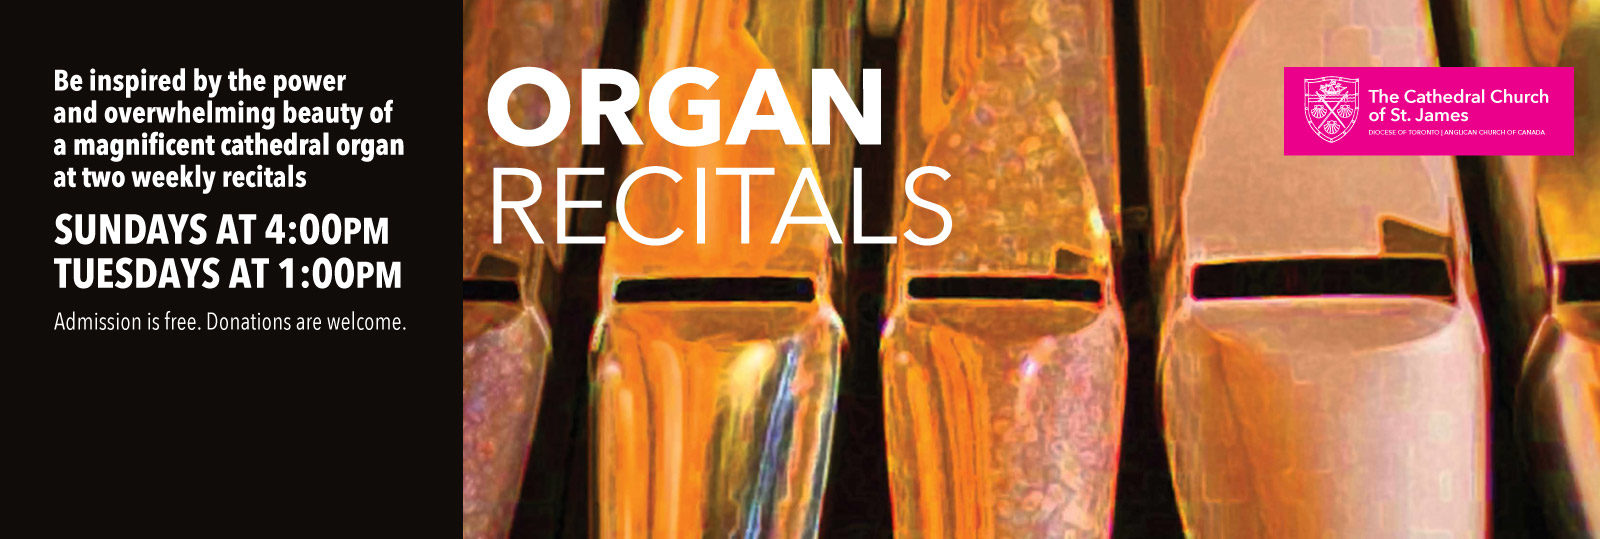 Organ Recitals at St. James